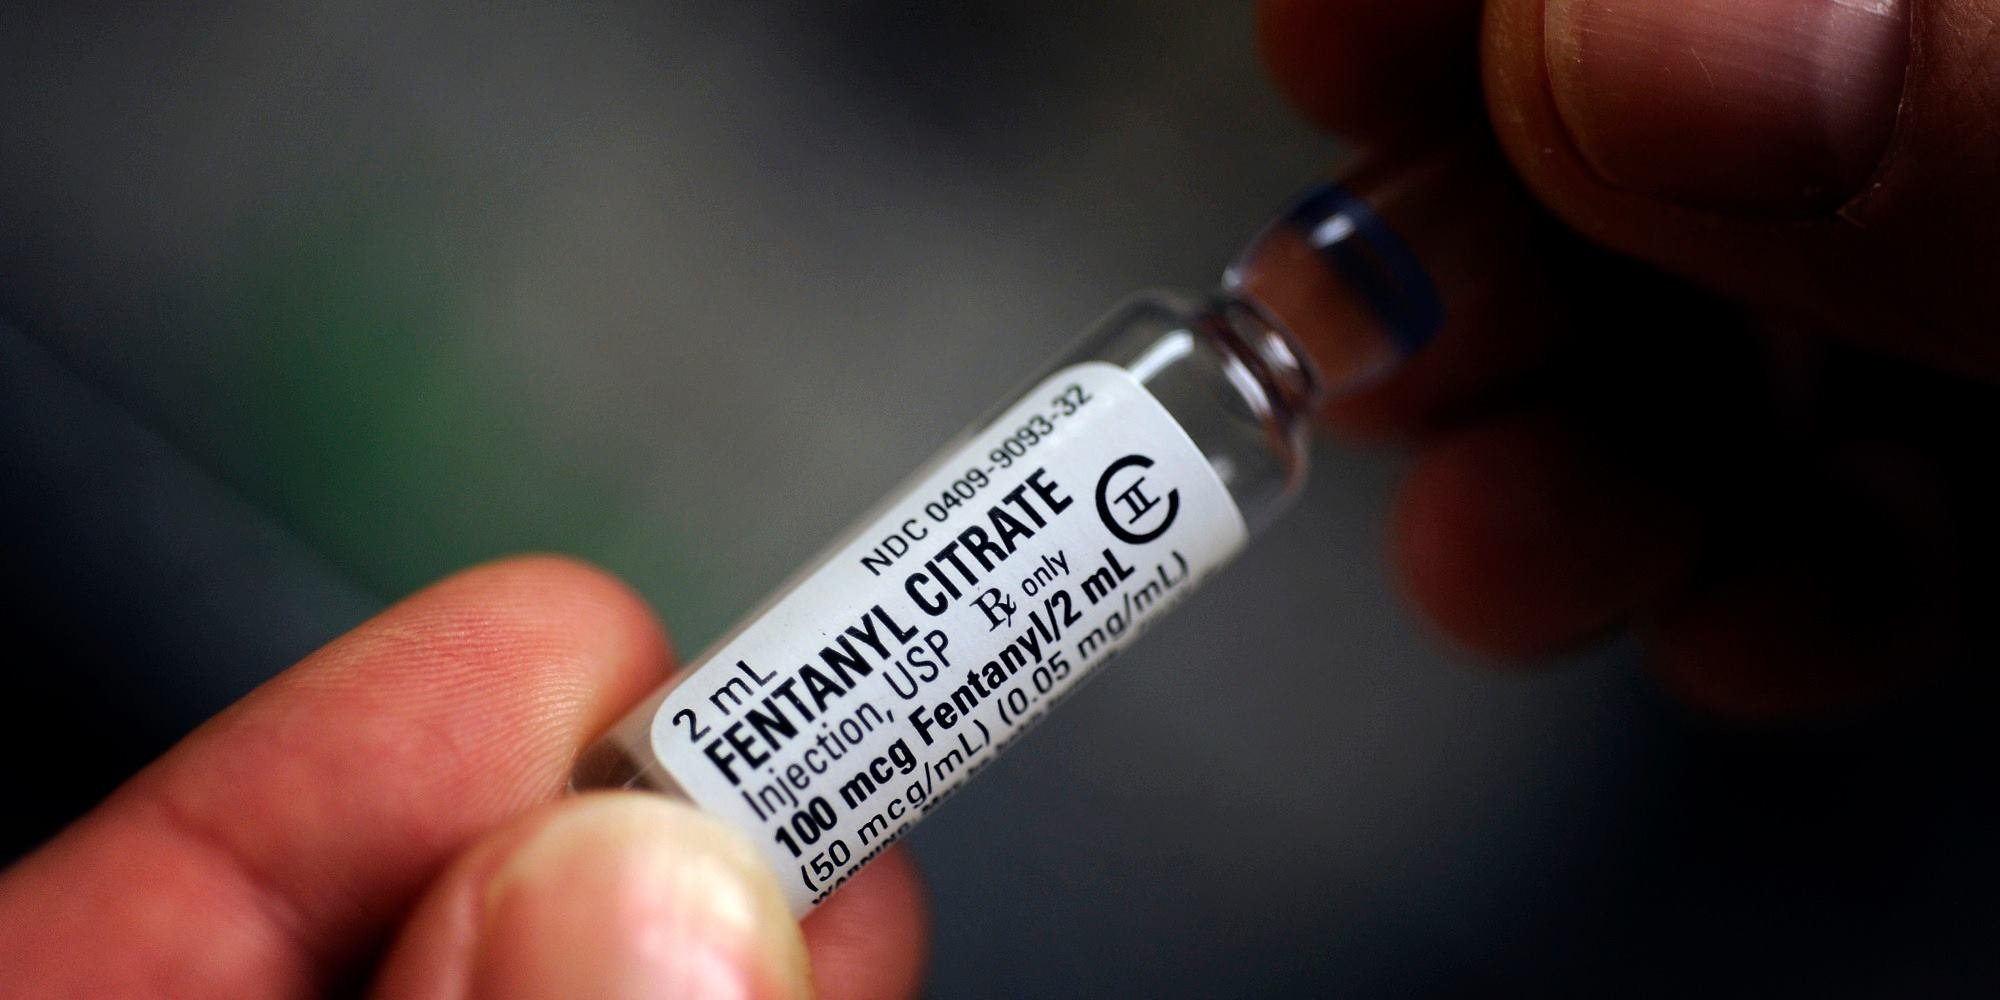 Fentanyl, an end-of-life pain killer, is being used to shoot up in place of or with heroin (Wikipedia)